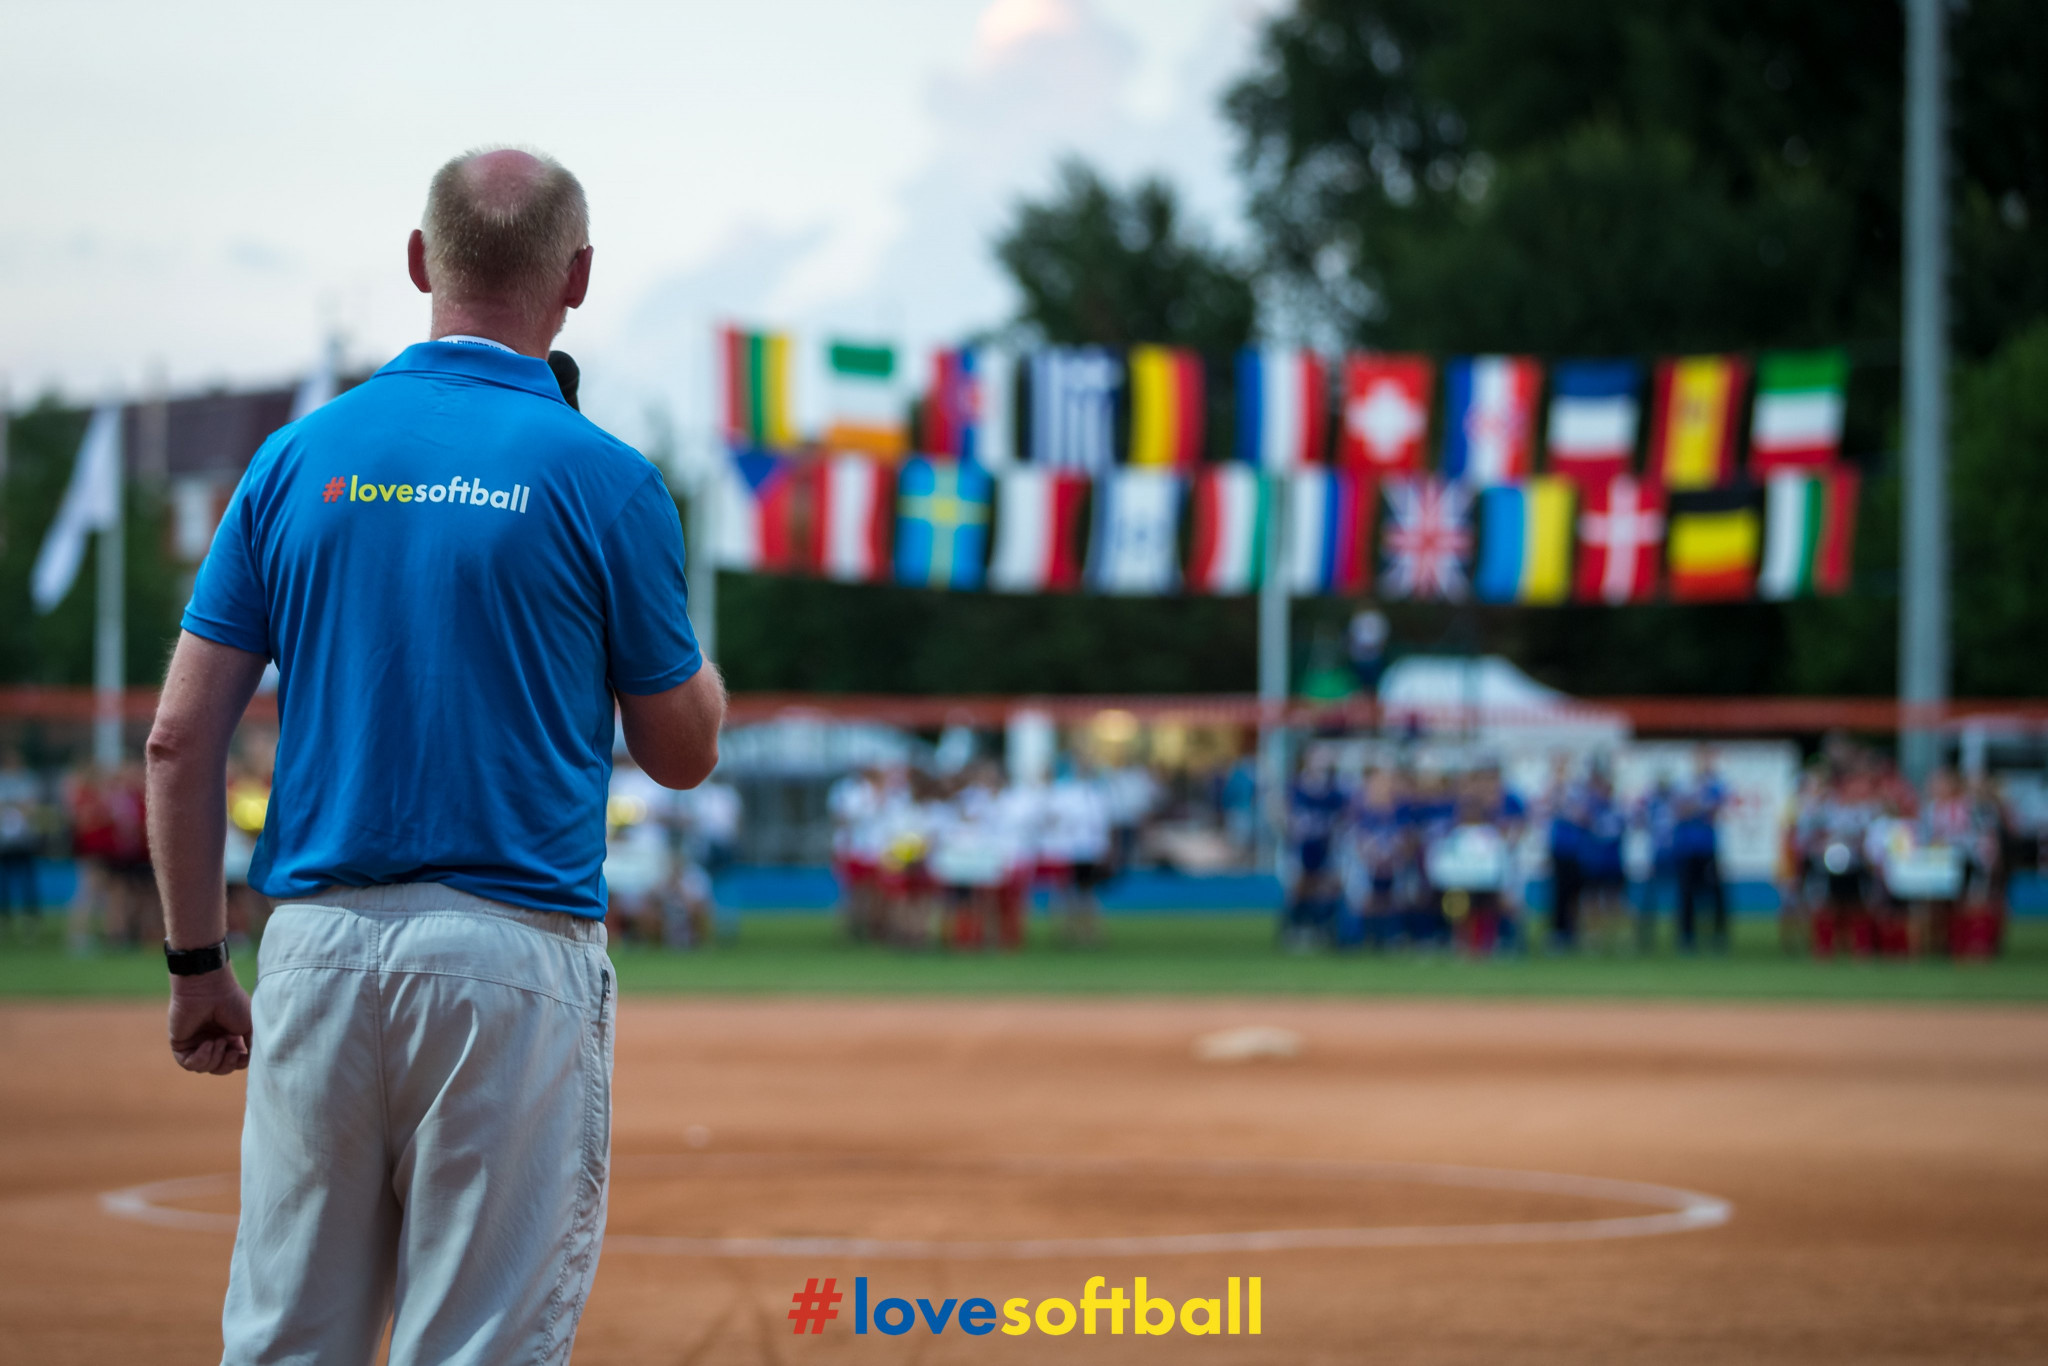 Hosts of cancelled 2020 events have agreed to stage competitions in 2021 or 2022 ©Softball Europe